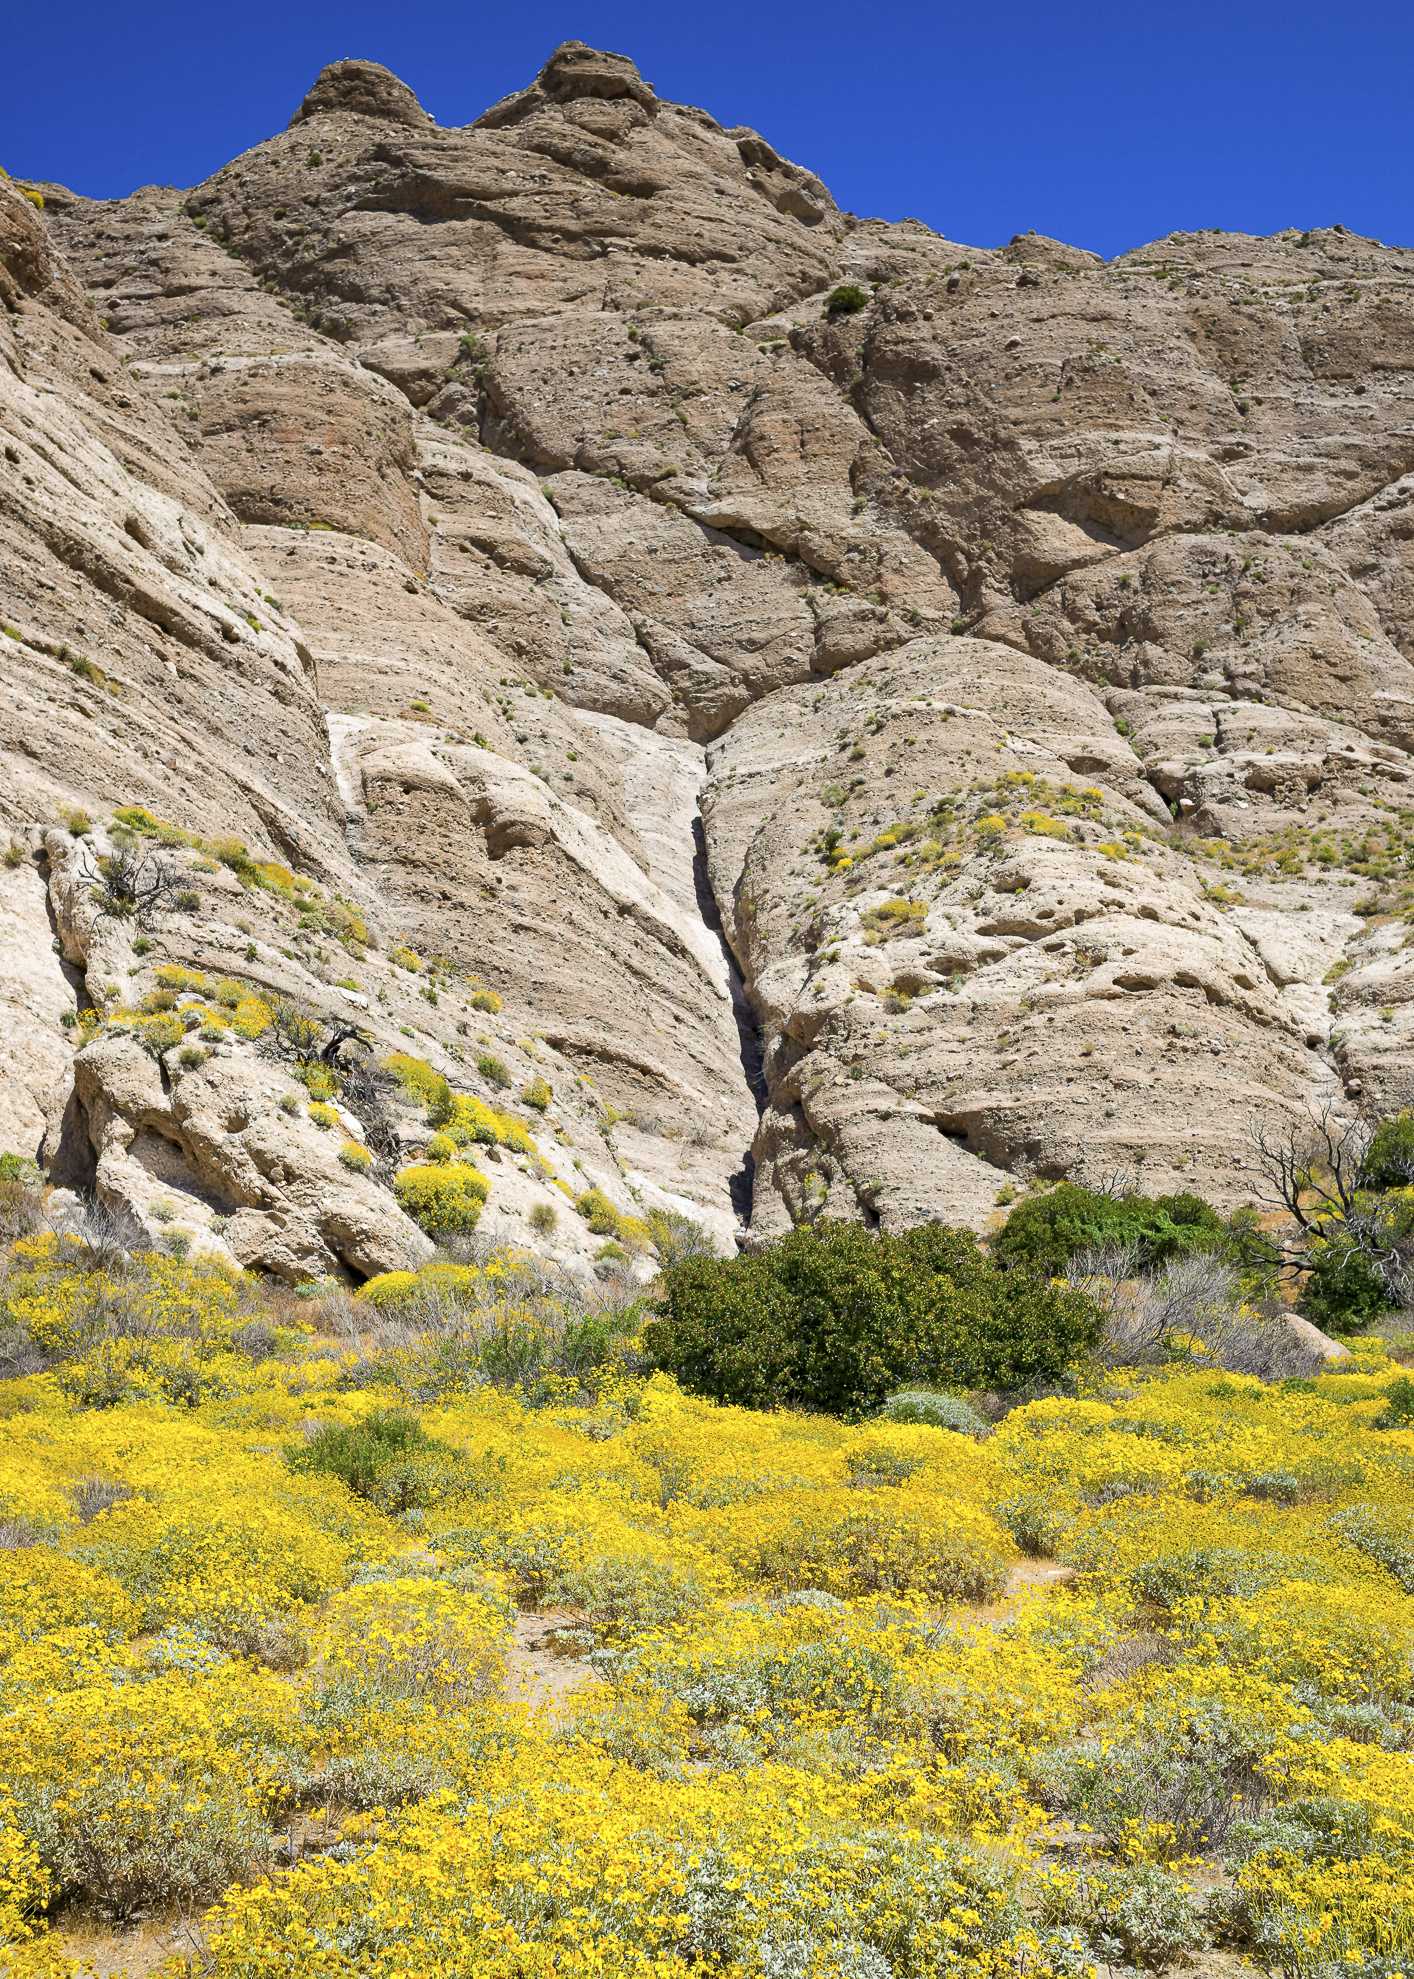 Whitewater Canyon Wildflowers